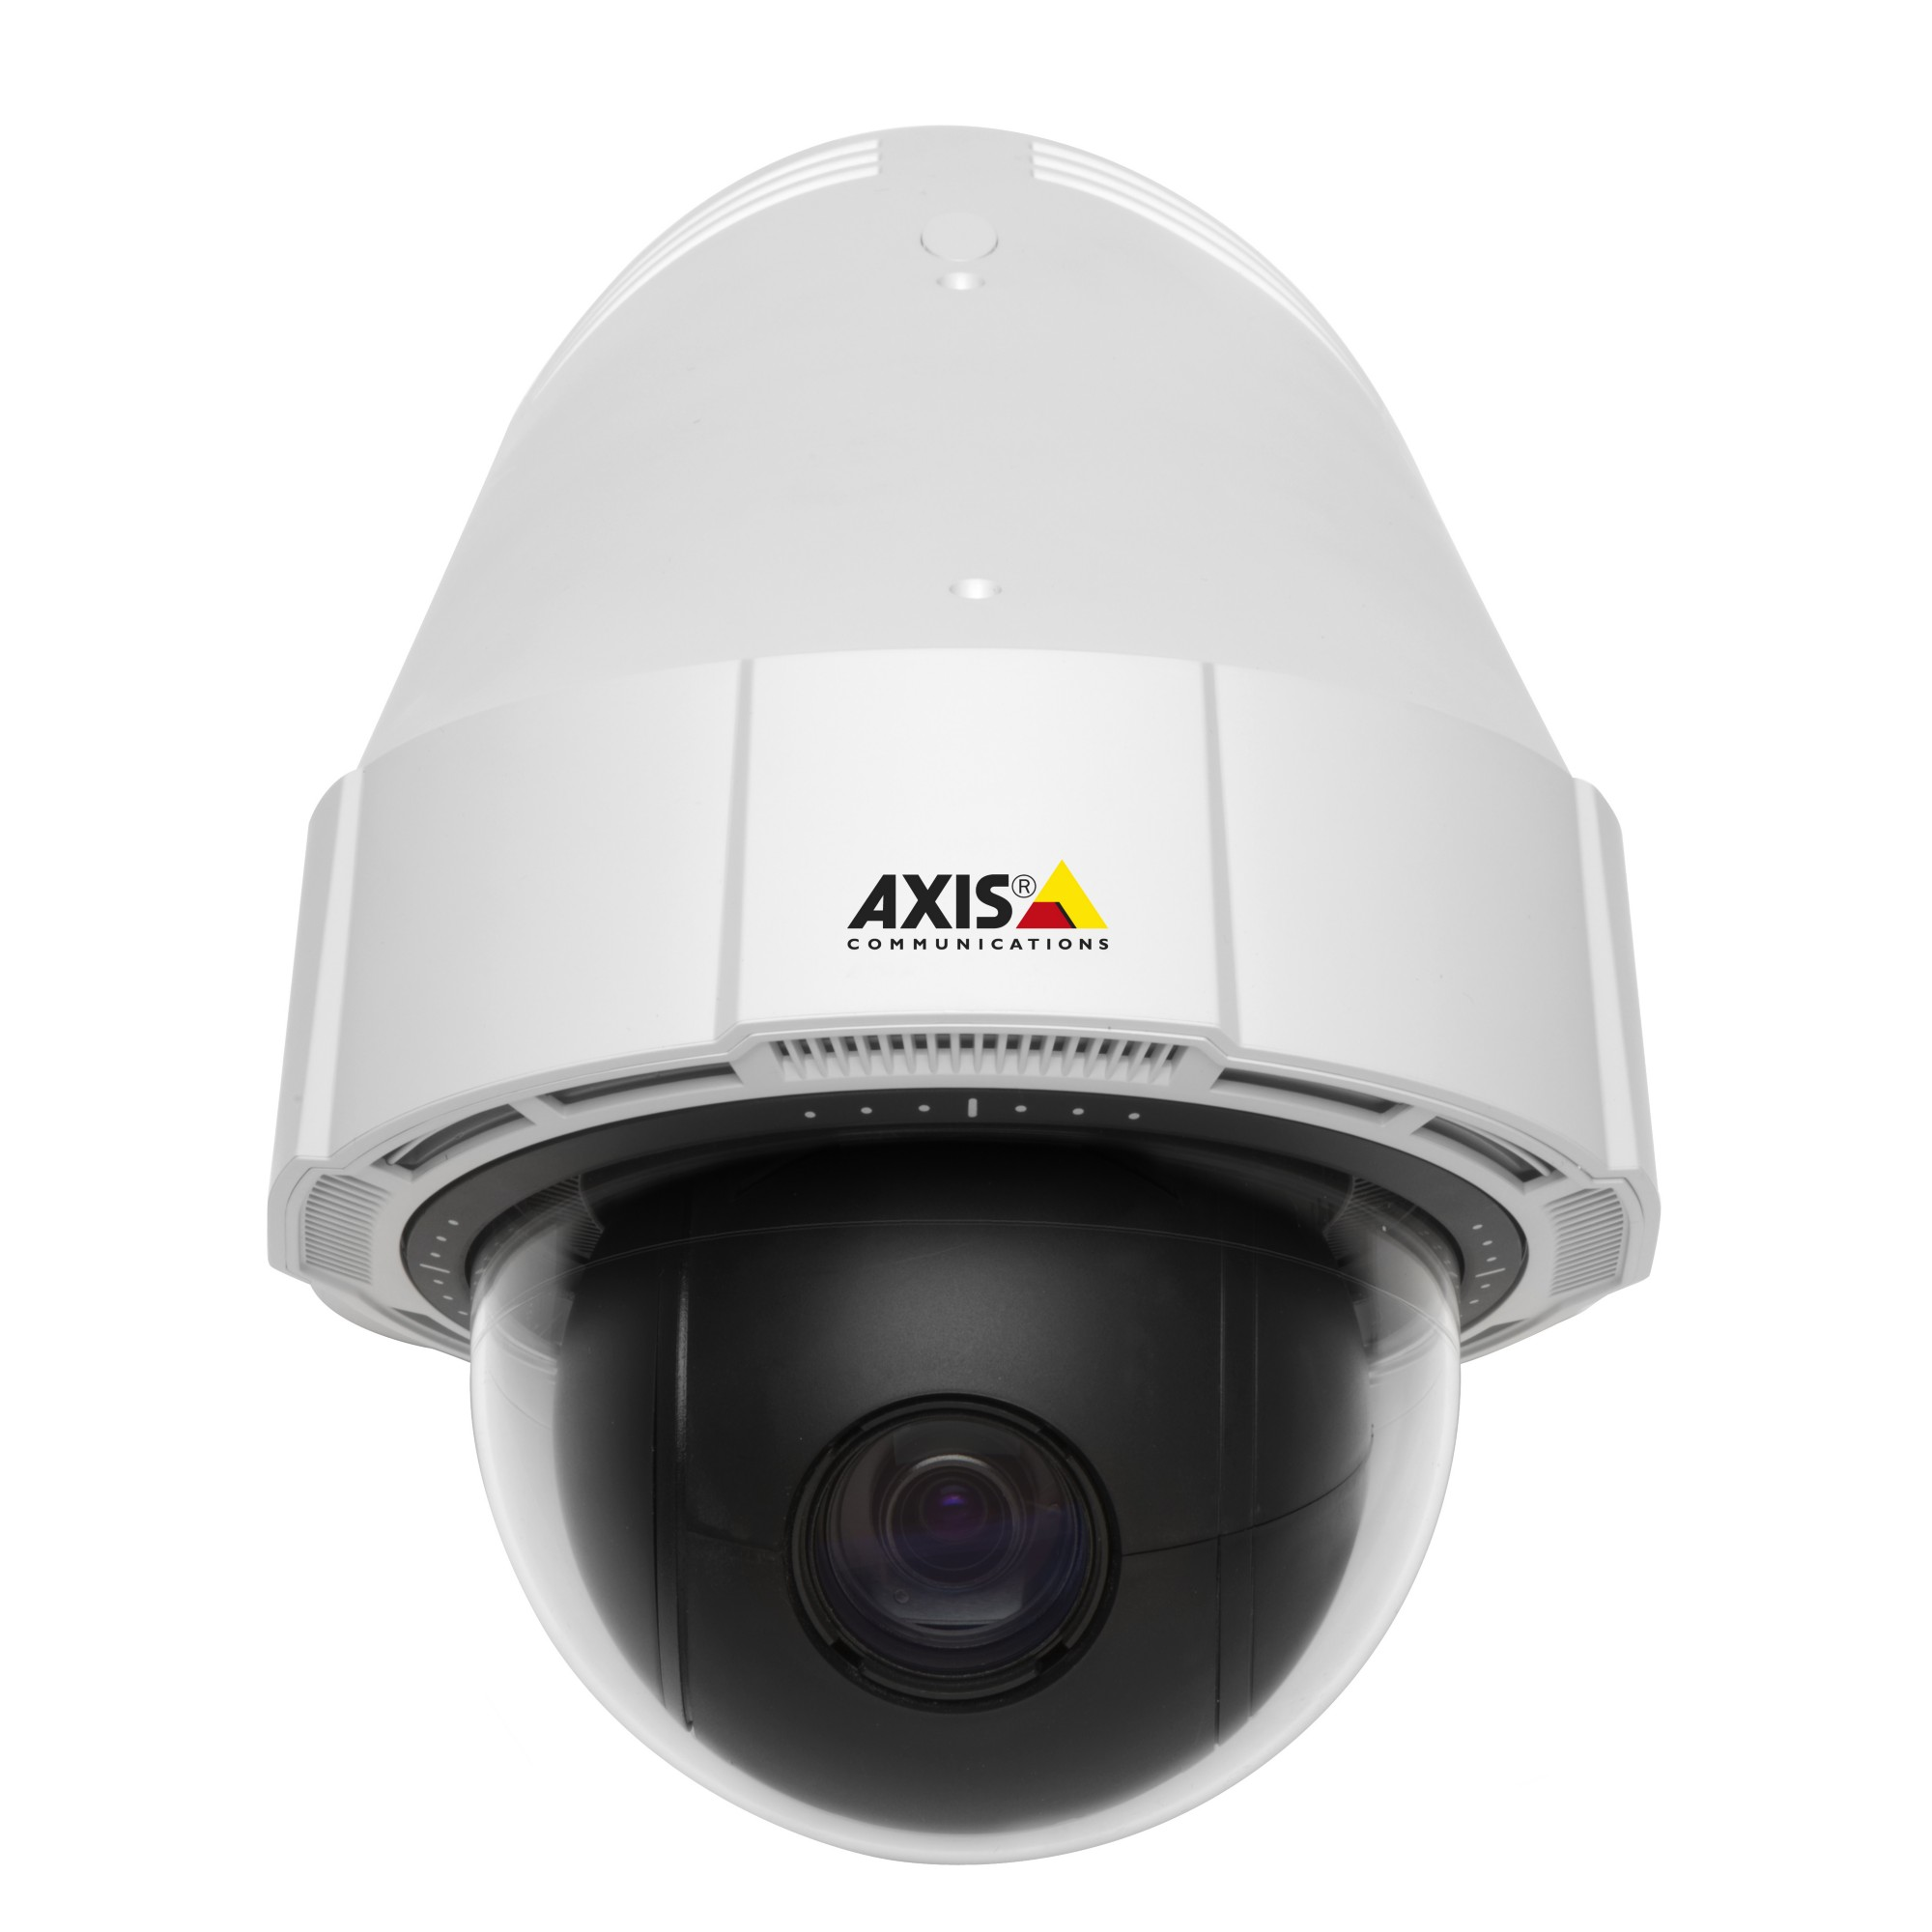 AXIS 0546-001 P5415-E IP SECURITY CAMERA OUTDOOR DOME WHITE 1920X1080PIXELS